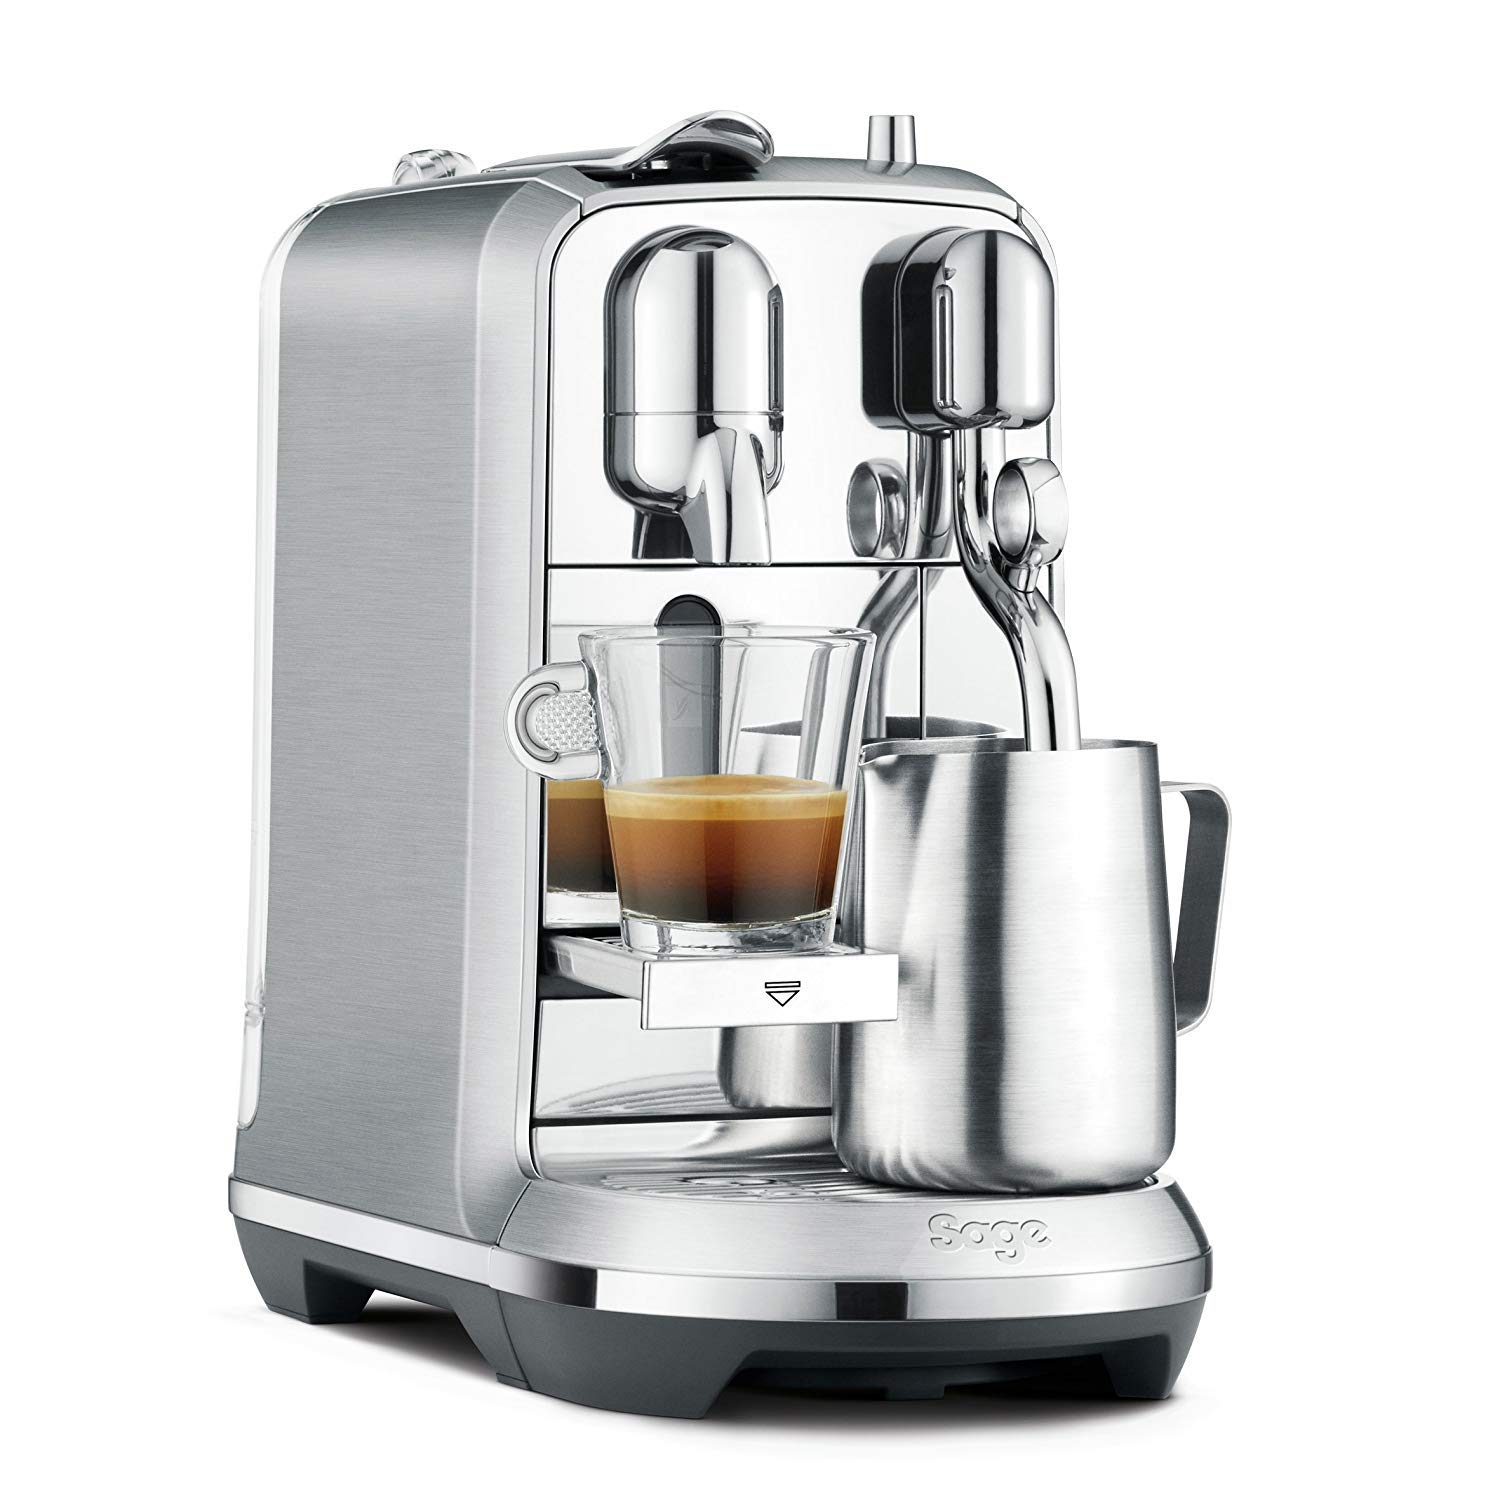 Sage-by-Heston-Blumenthal-Nespresso-Creatista-Coffee-Machine